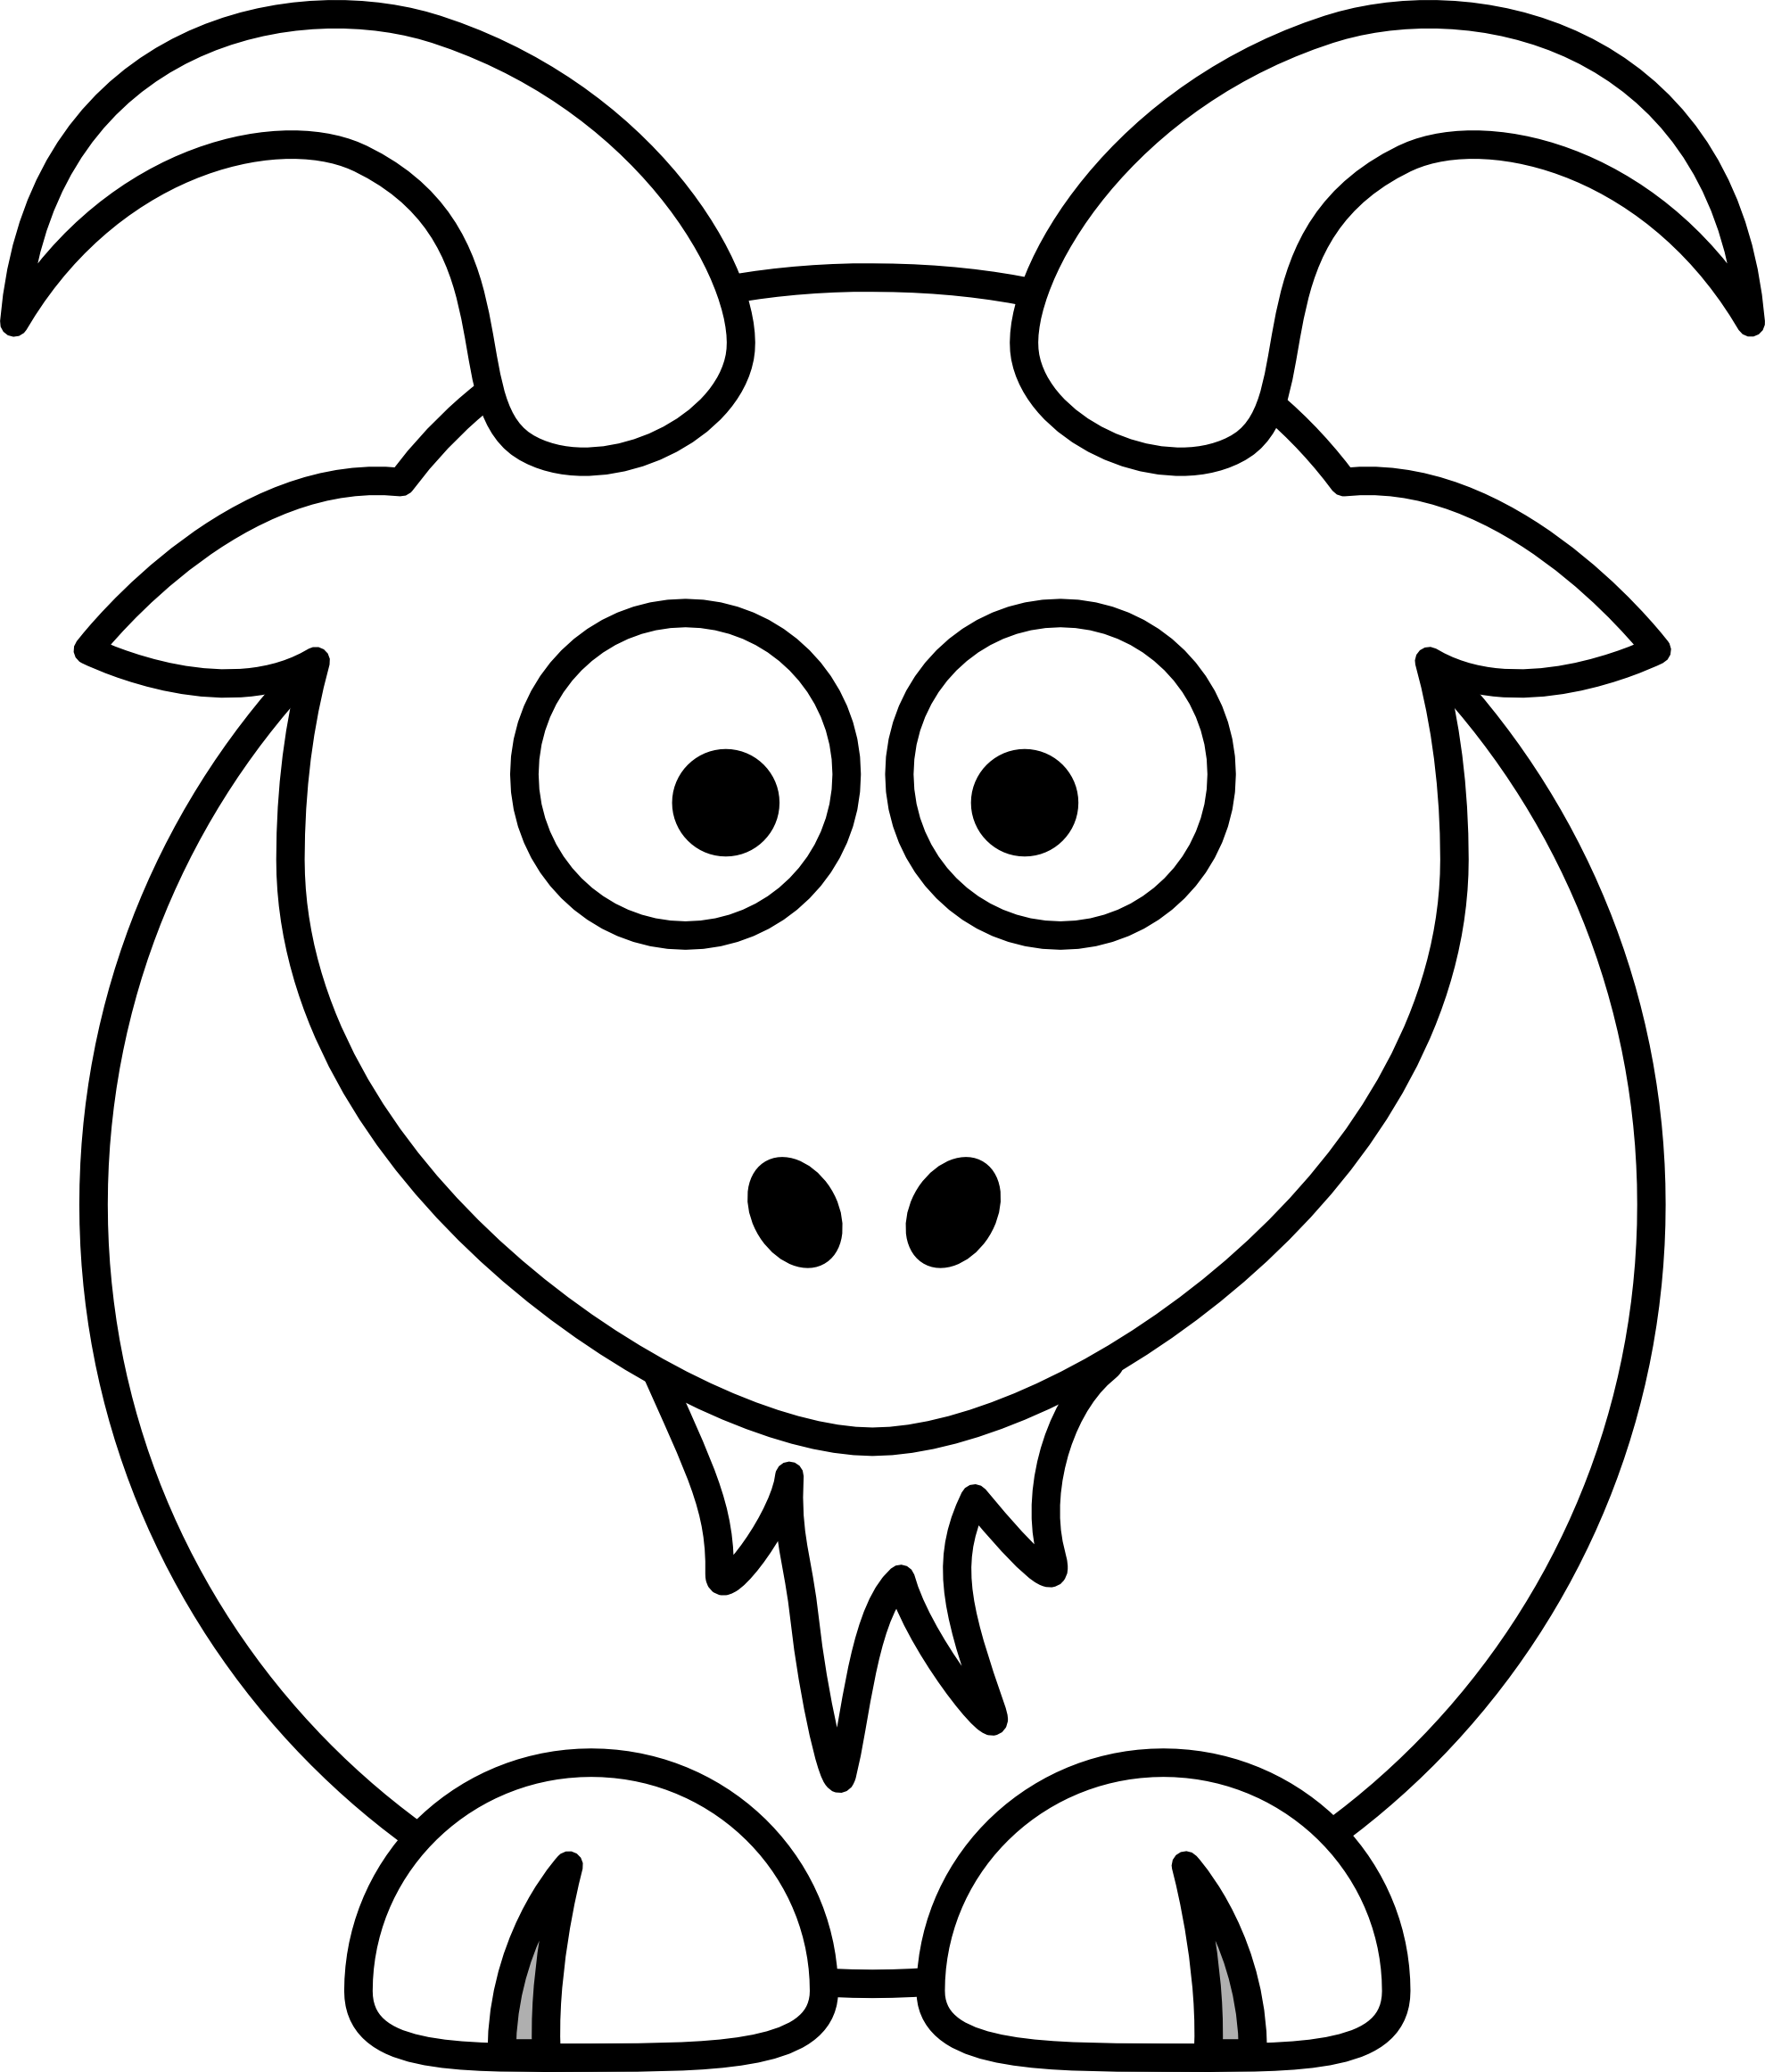 Black And White Line Drawings Of Animals : Animal line drawings clipart best